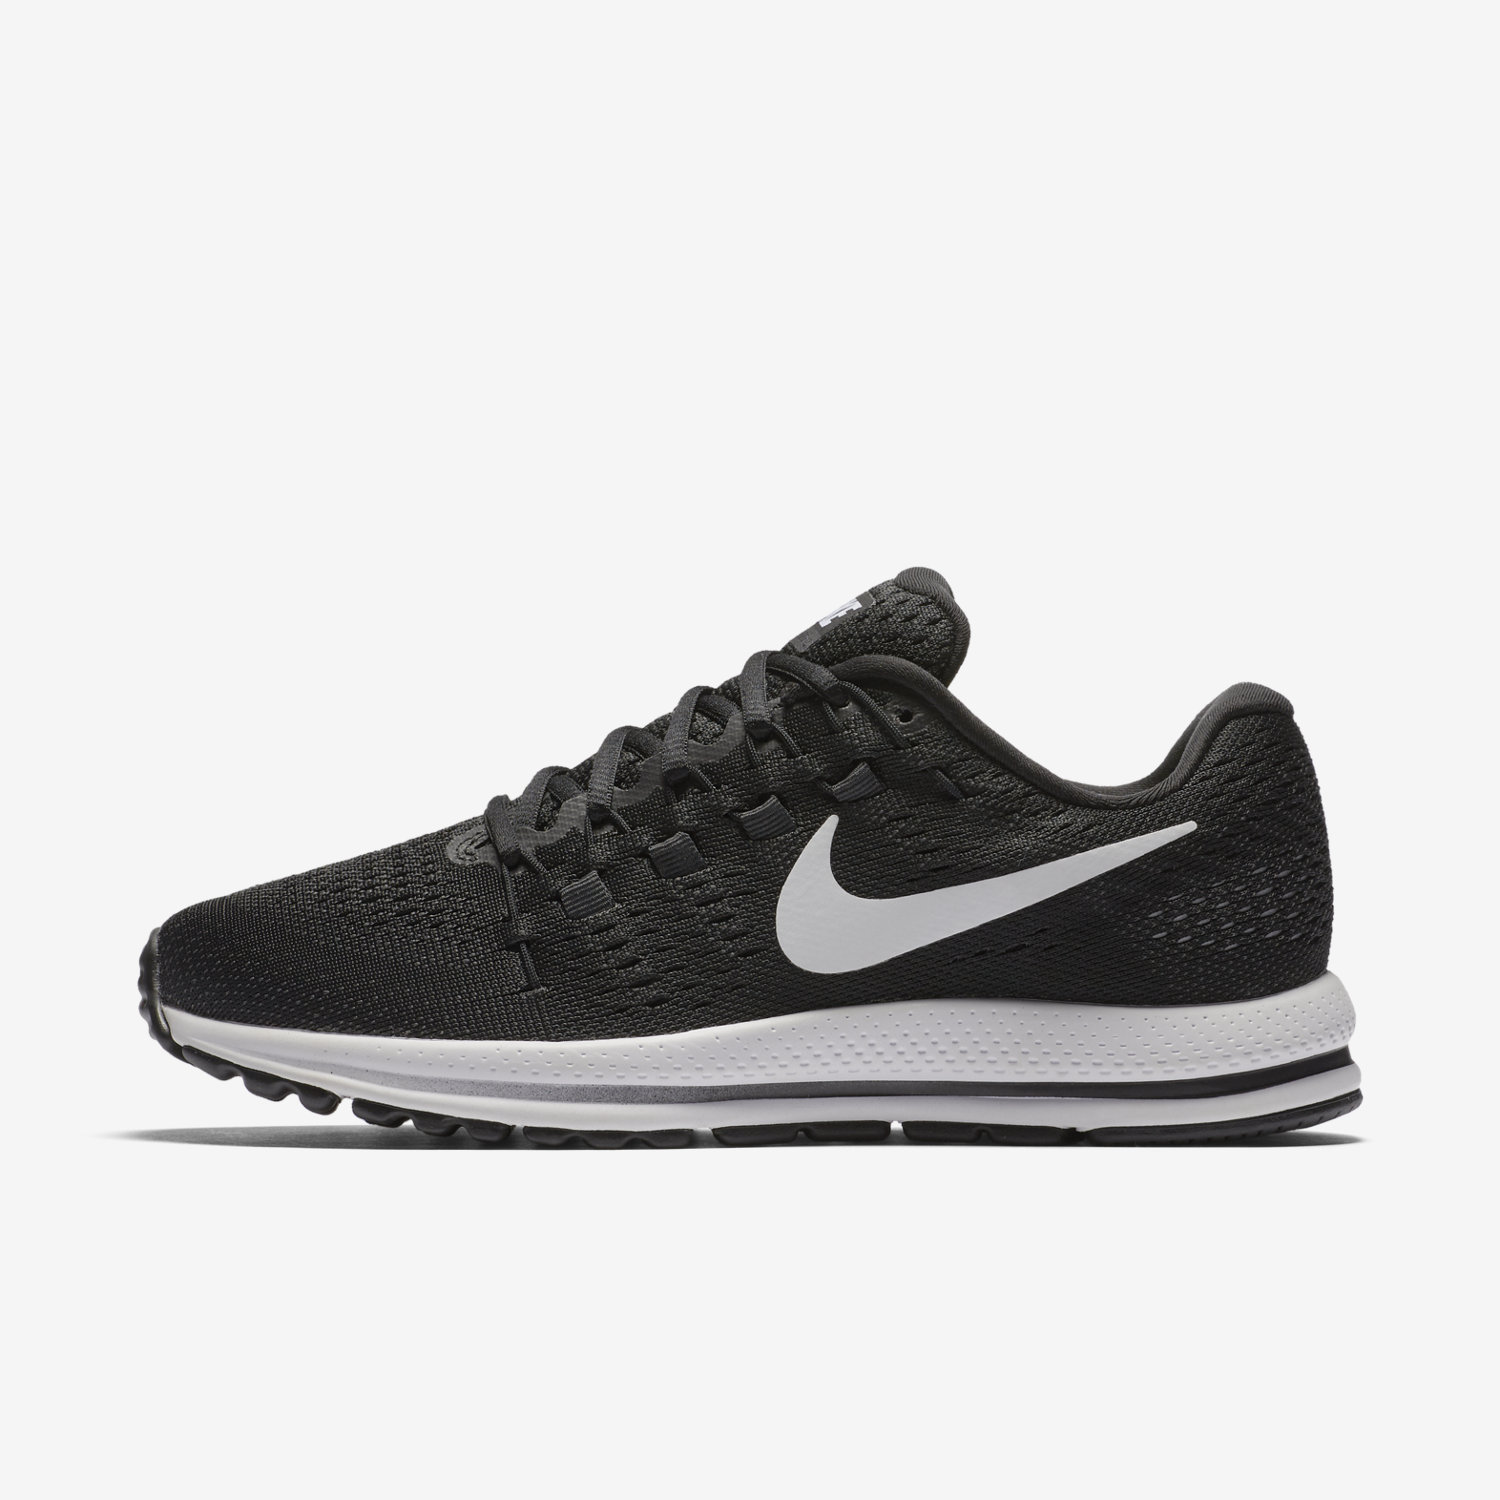 newest 9a06c b78c9 black and white womens nike shoes